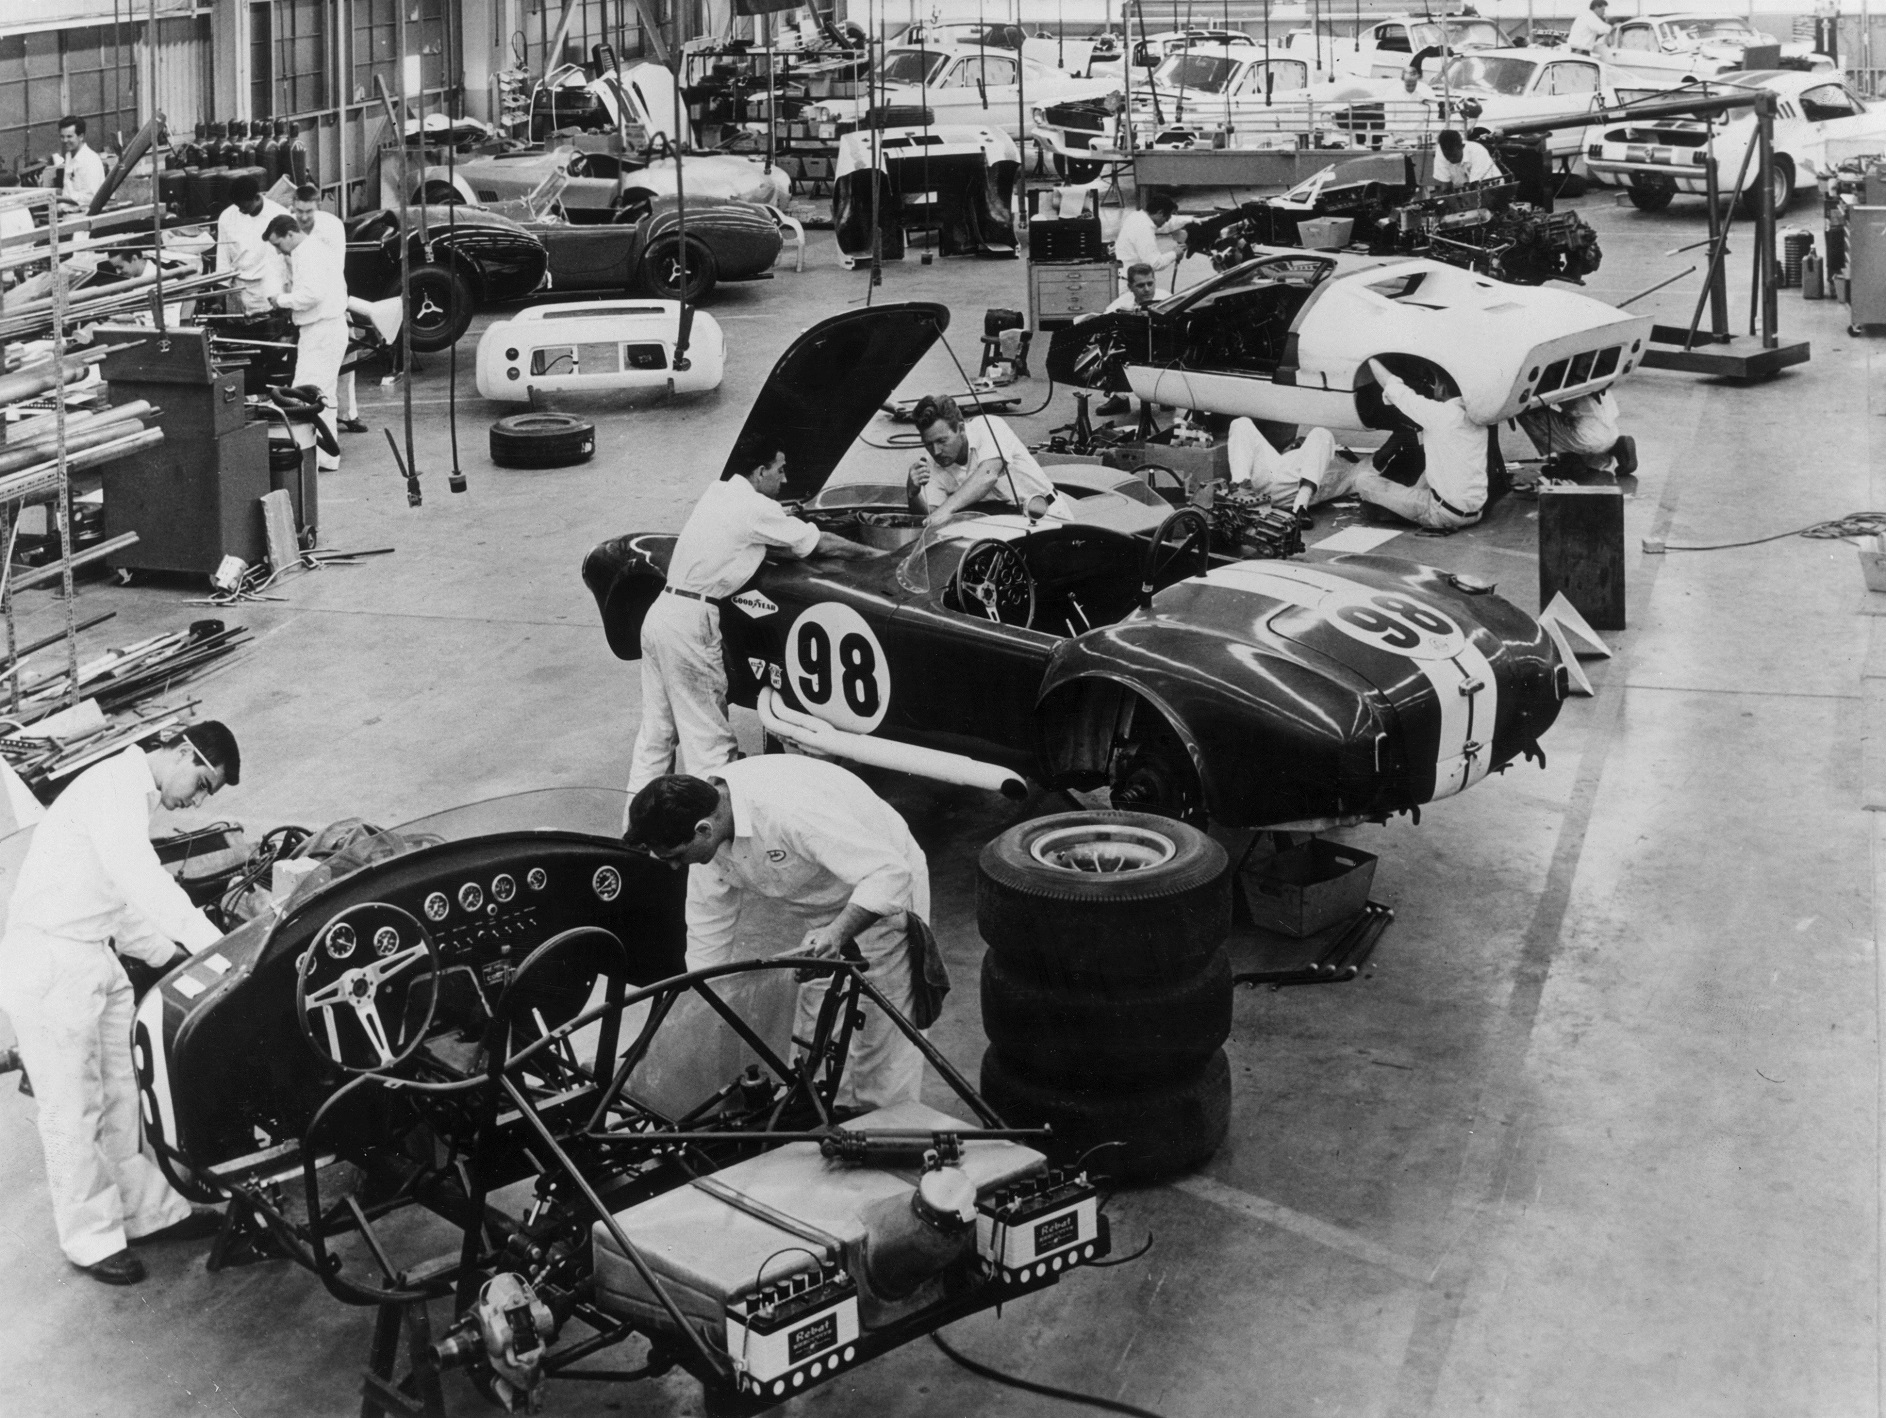 Shelby design works on a 1965 Ford Mustang